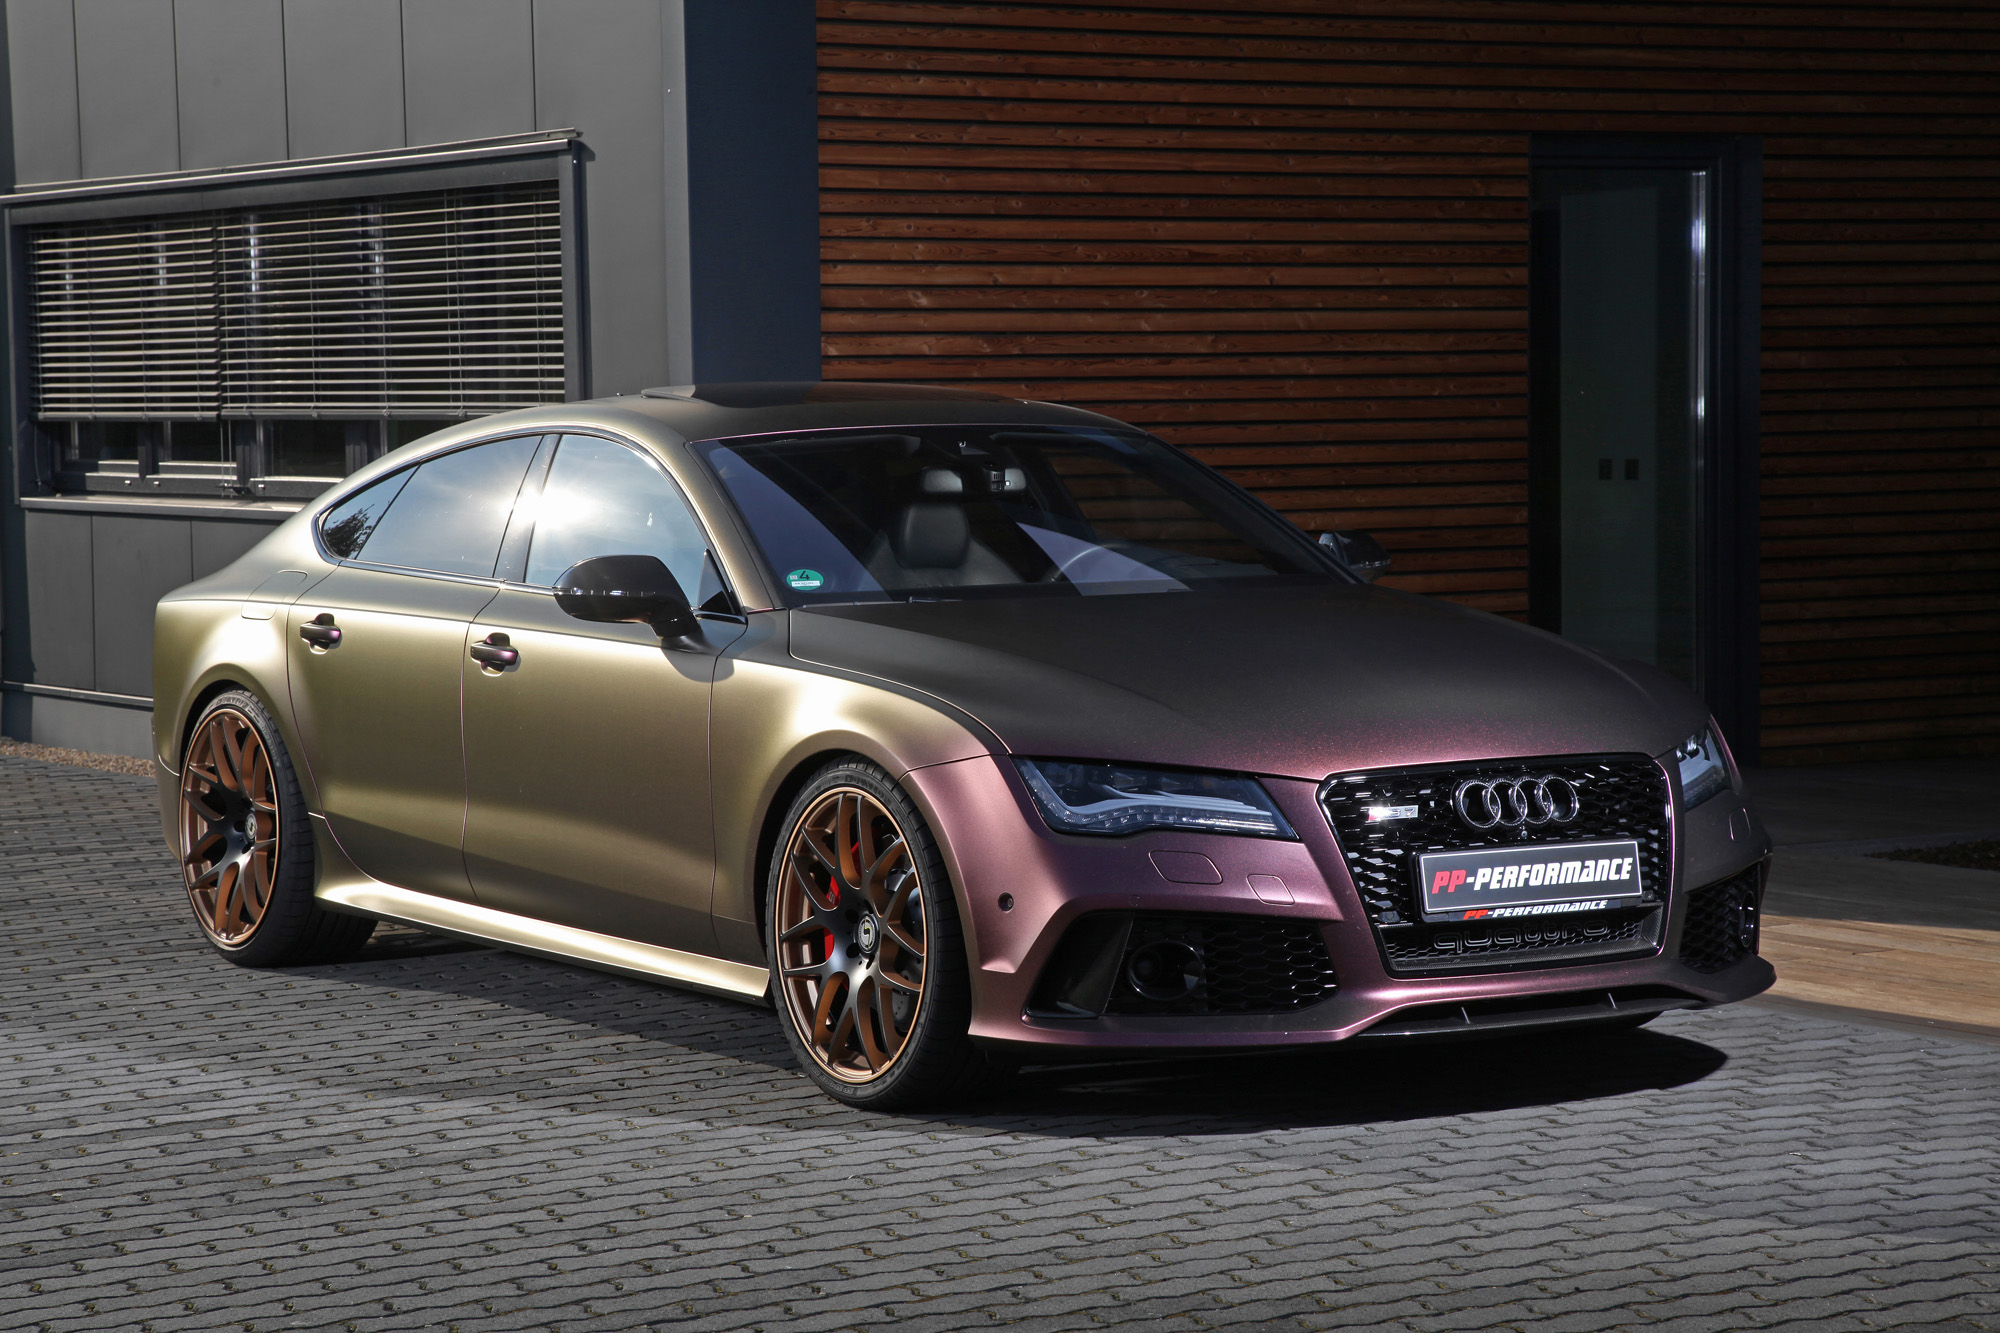 audi-rs-7-sportback-pp-performance-13